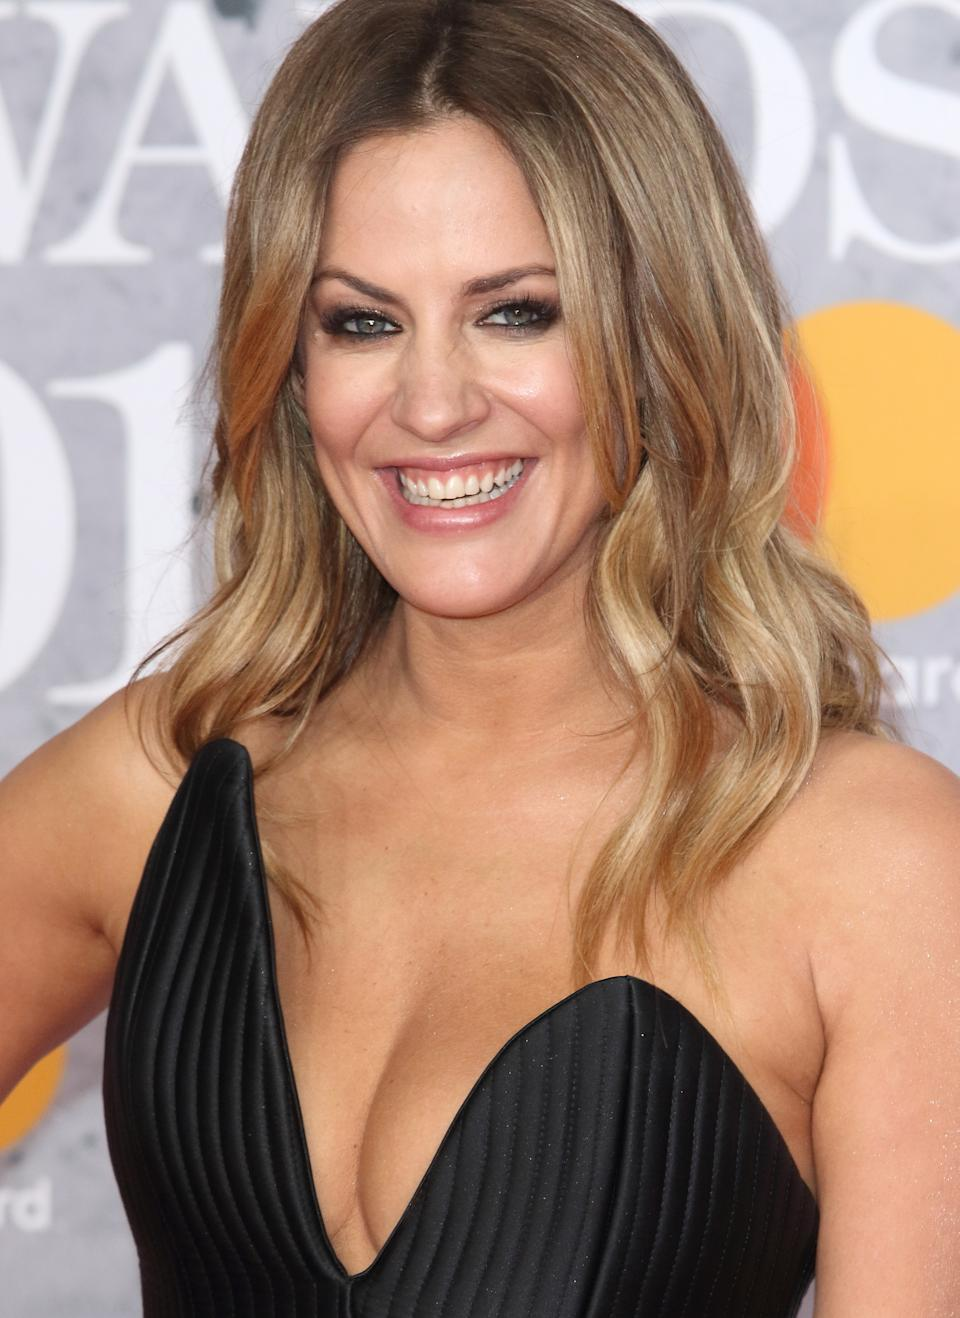 Caroline Flack seen on the red carpet during The BRIT Awards 2019 at The O2, Peninsula Square in London. (Photo by Keith Mayhew / SOPA Images/Sipa USA)